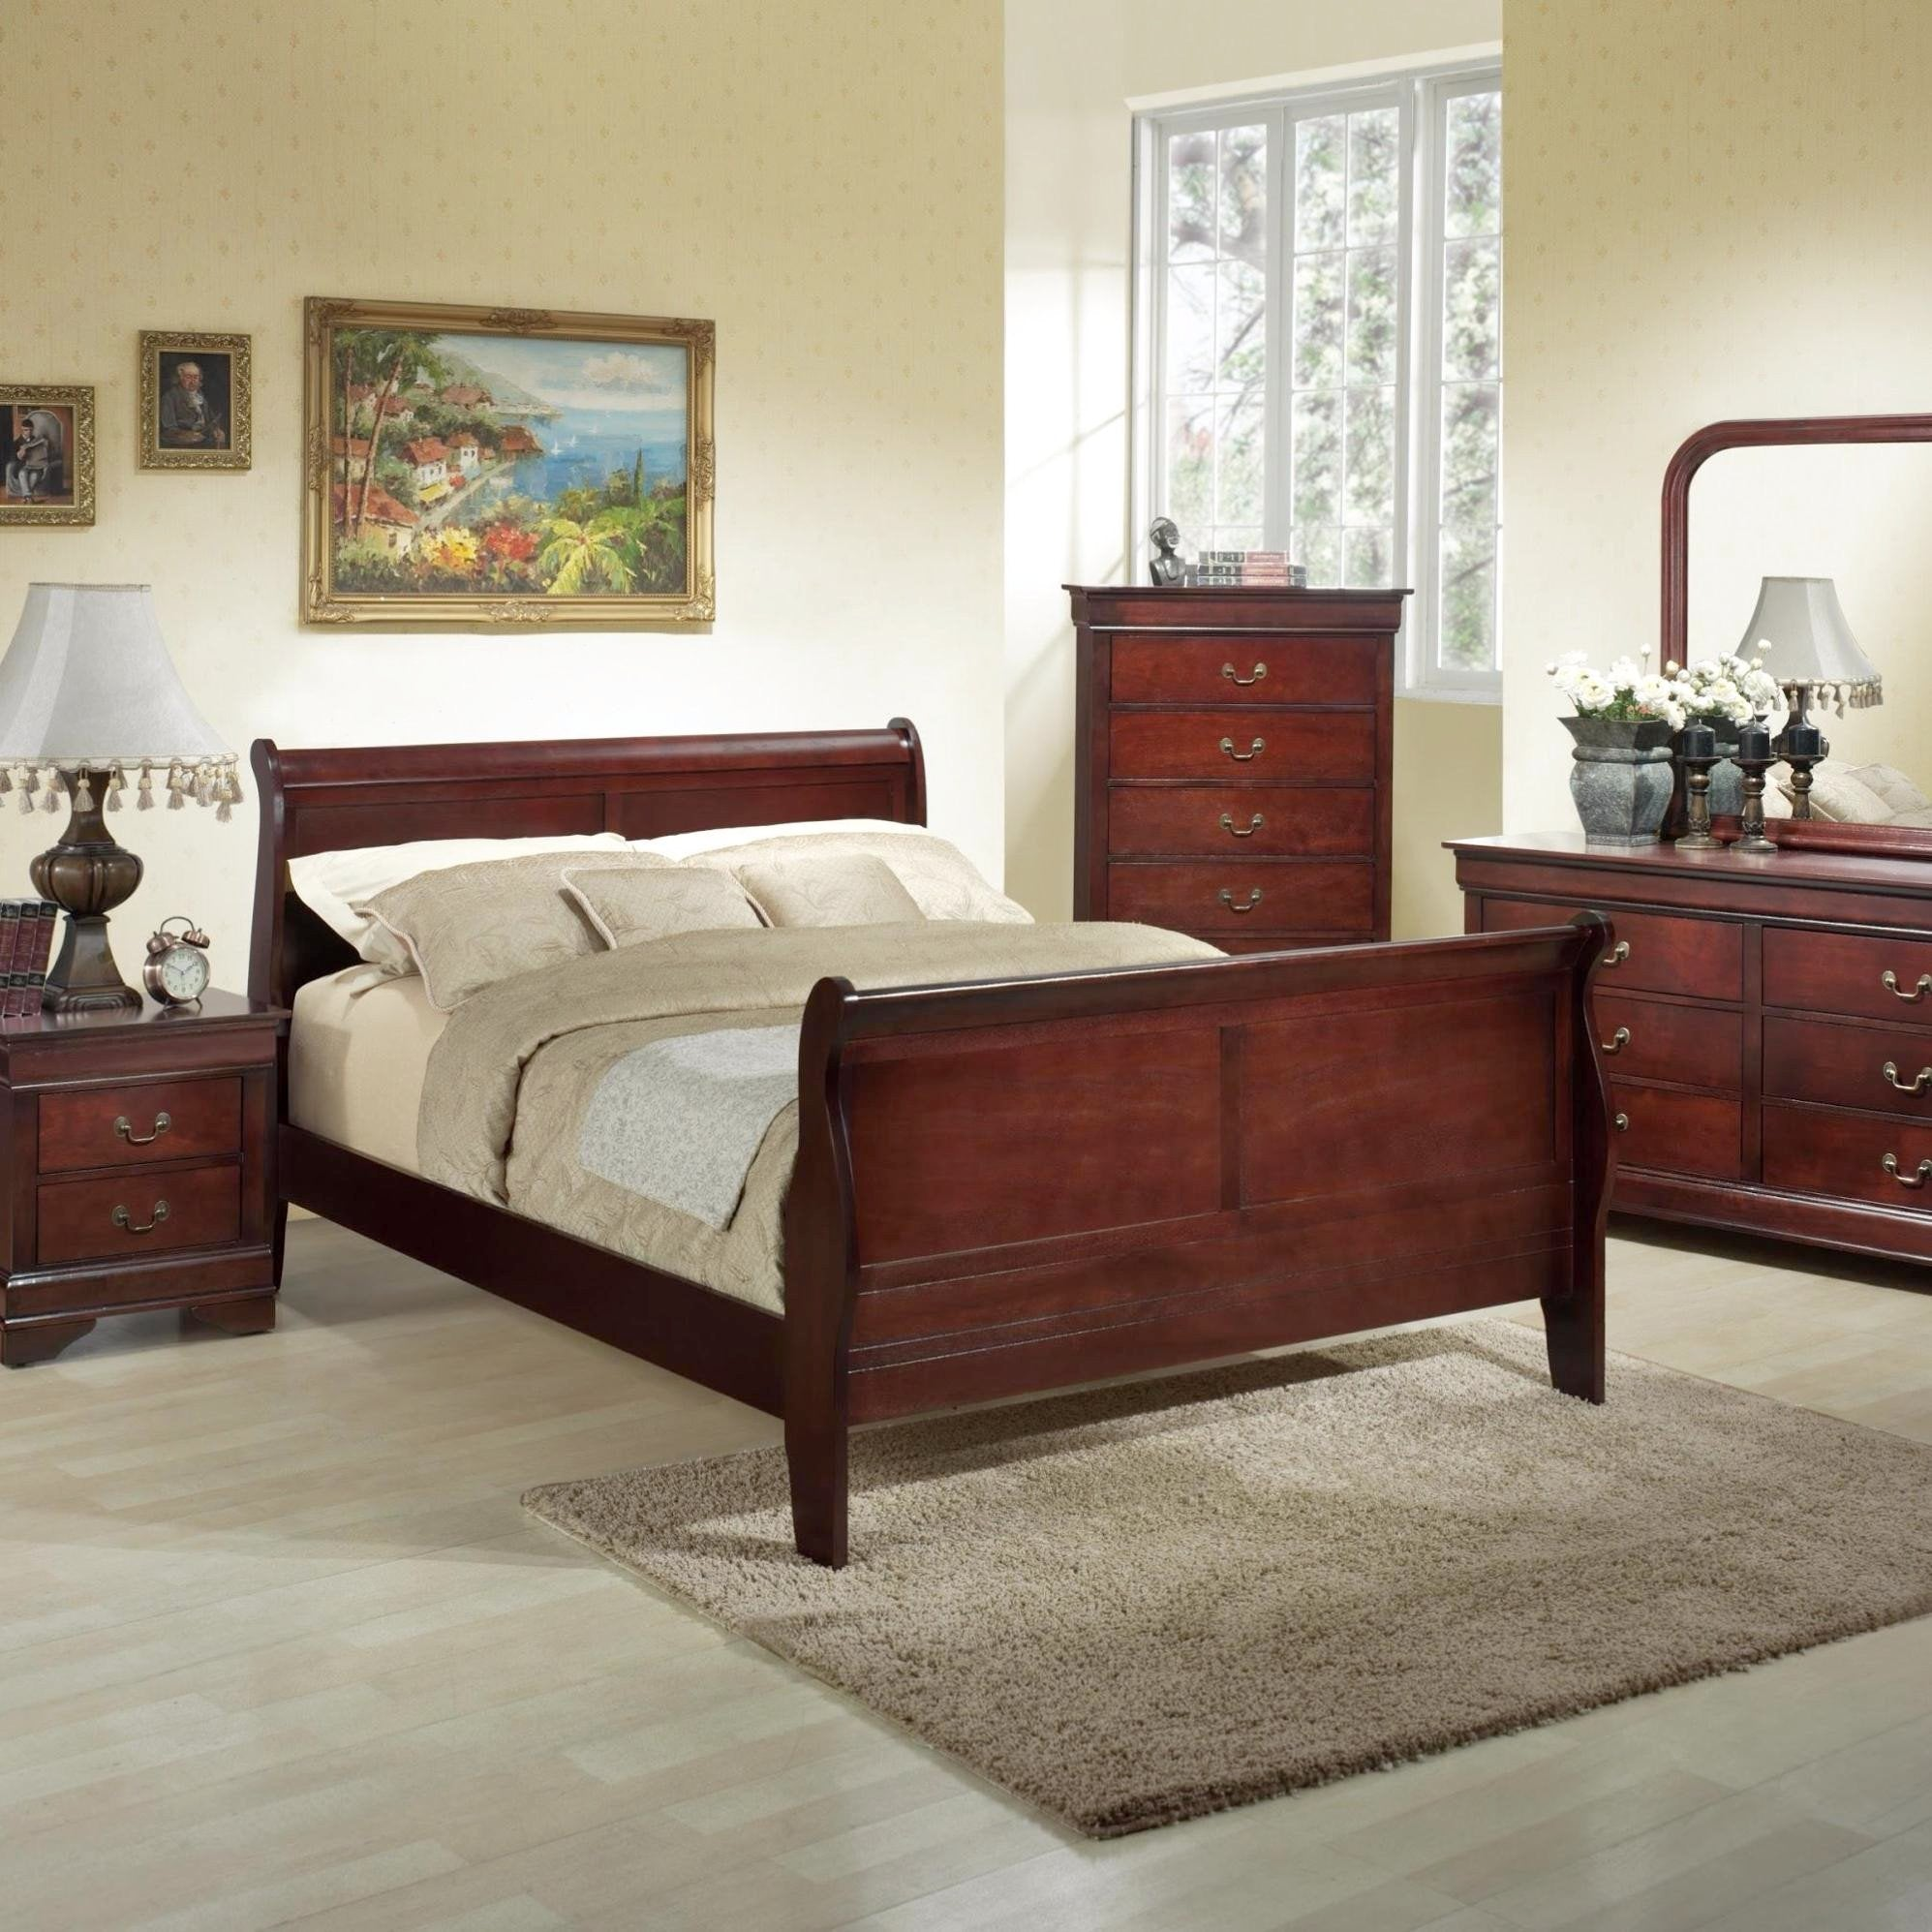 Merveilleux Louis Philippe Bedroom Set, Bedroom Set, LIFESTYLE   Adams Furniture ...